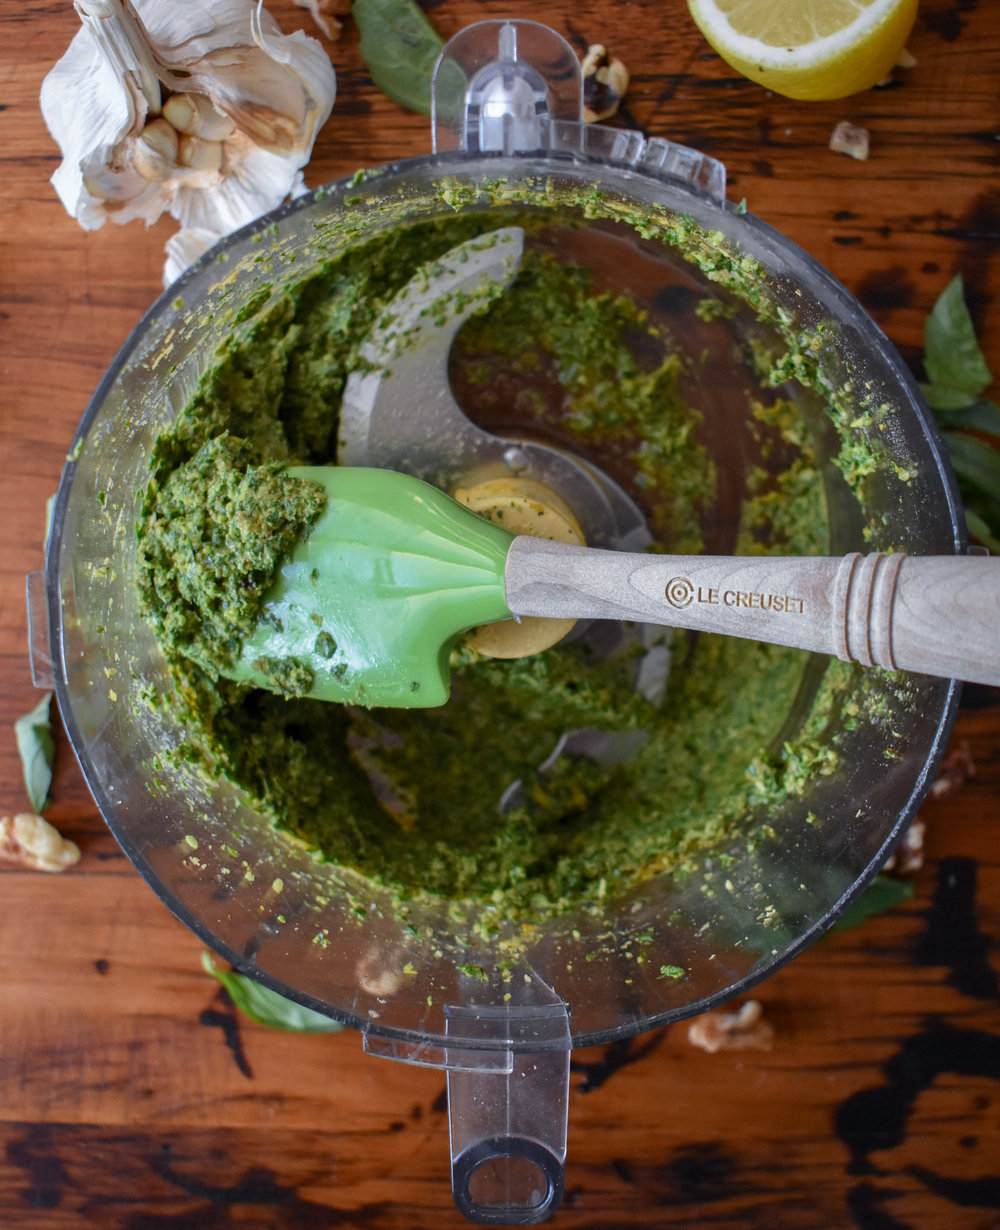 3. While the potatoes continue to cook, make your pesto per the instructions from  our basil recipe.